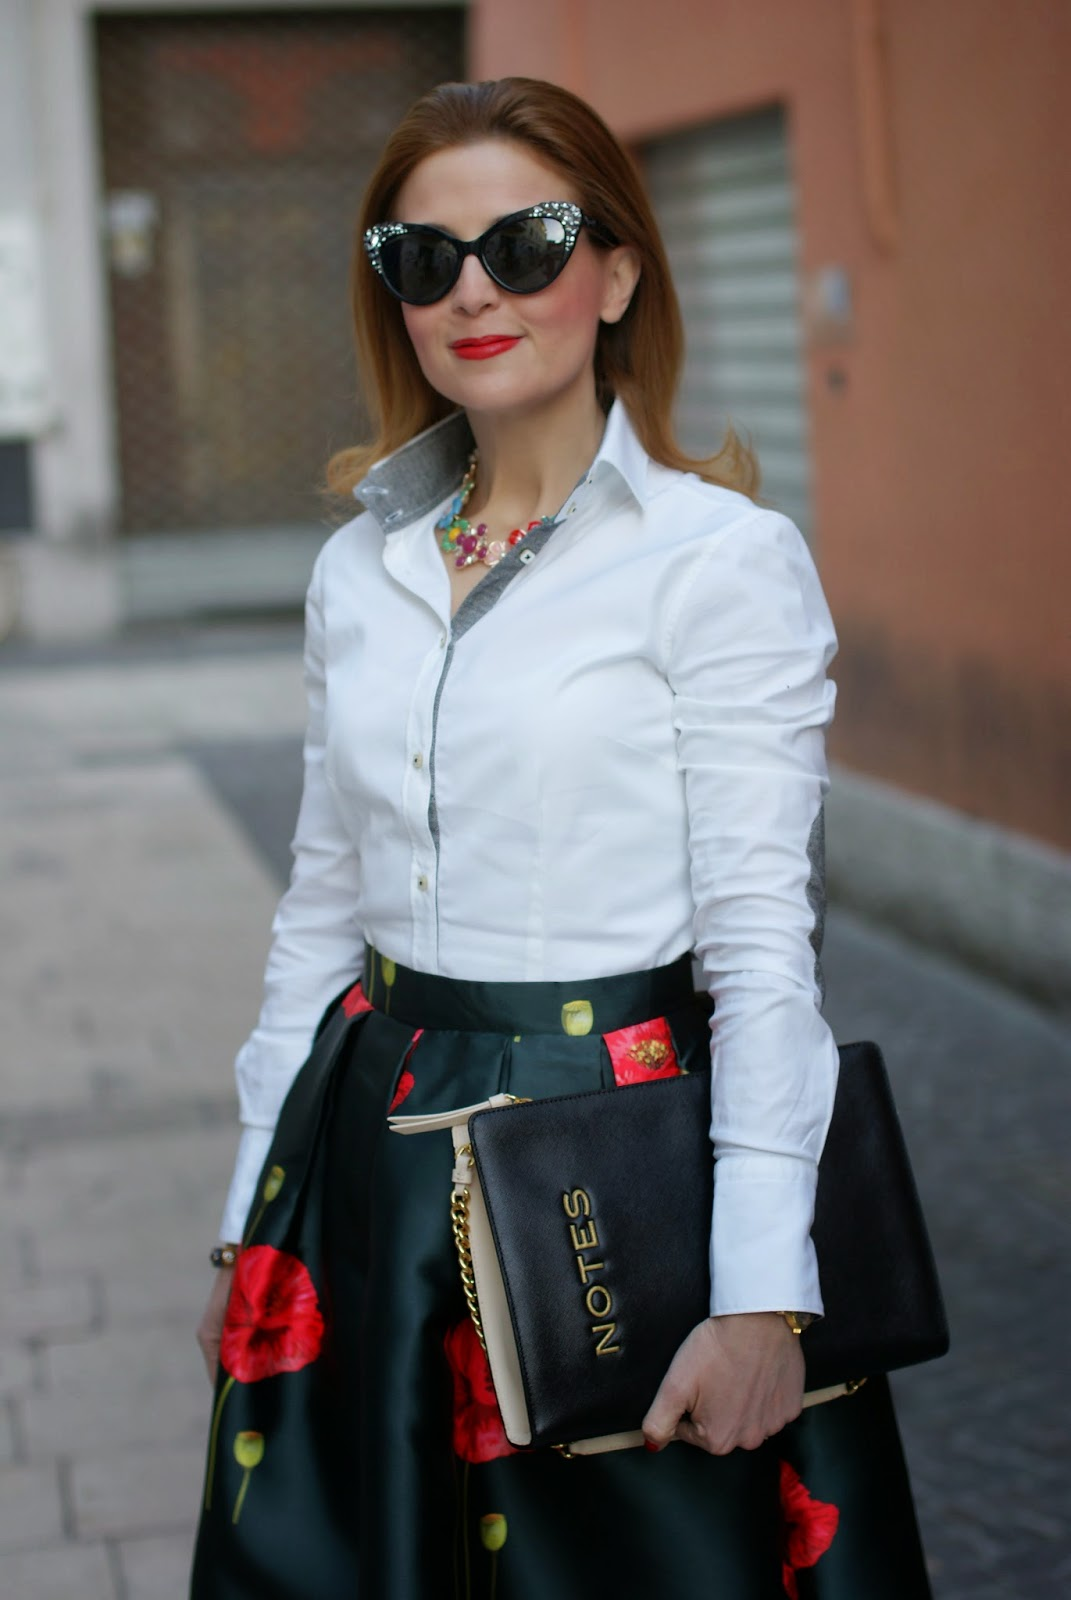 Moschino Notes clutch, Romwe midi skirt, poppy print skirt, Fashion and Cookies, fashion blogger